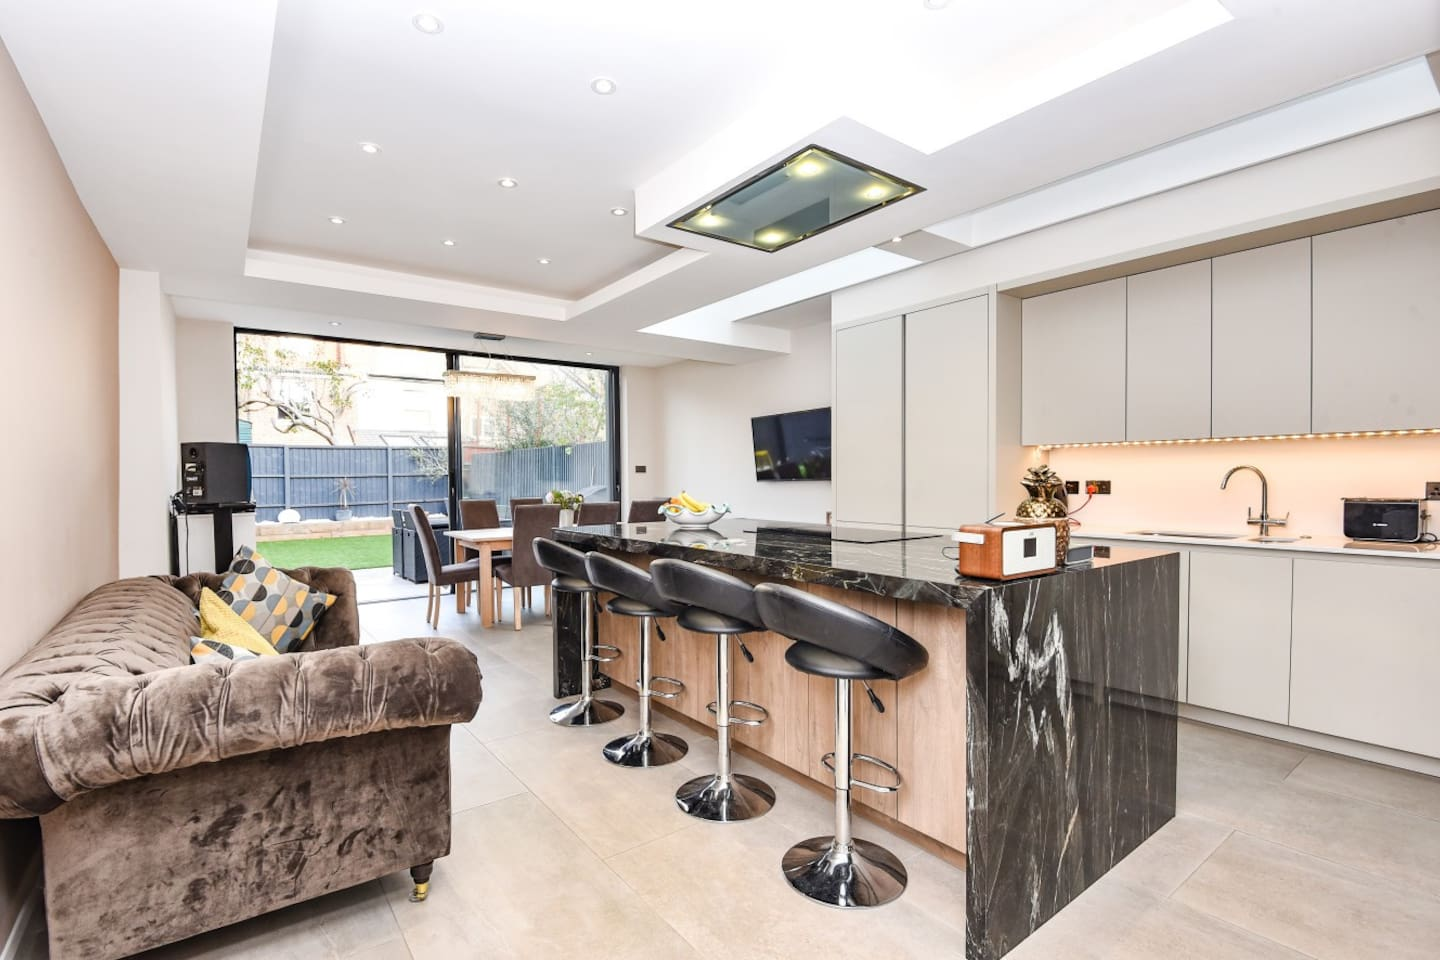 Stunning kitchen with all mod cons